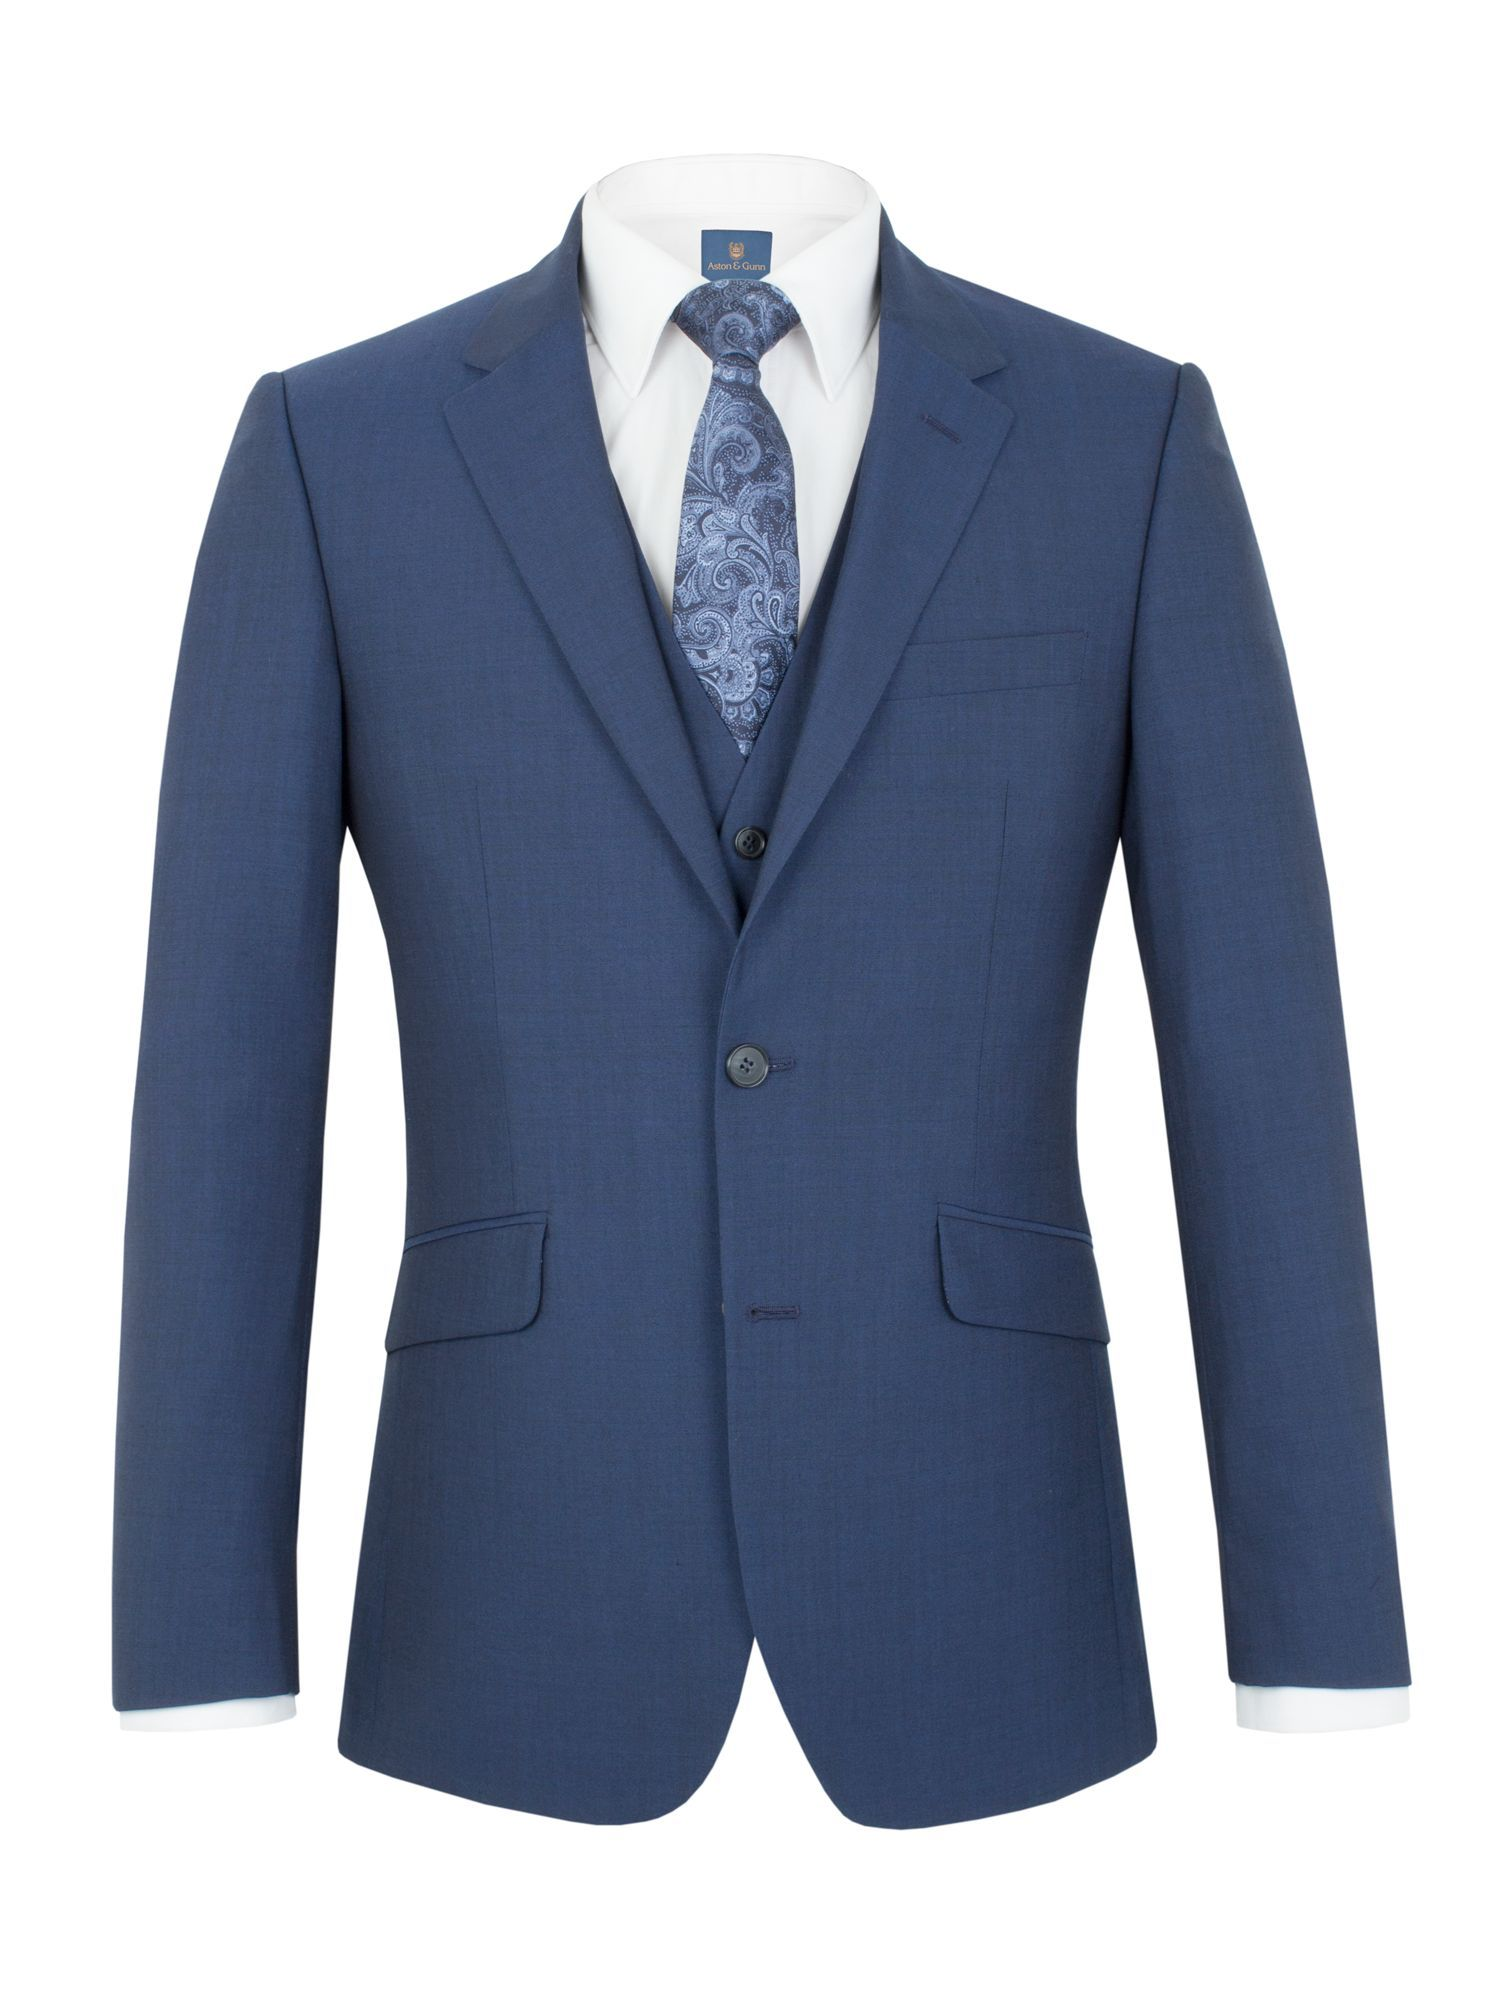 1a7f094d7 Buy: Men's Aston & Gunn Harewood tailored jacket, Blue for just ...